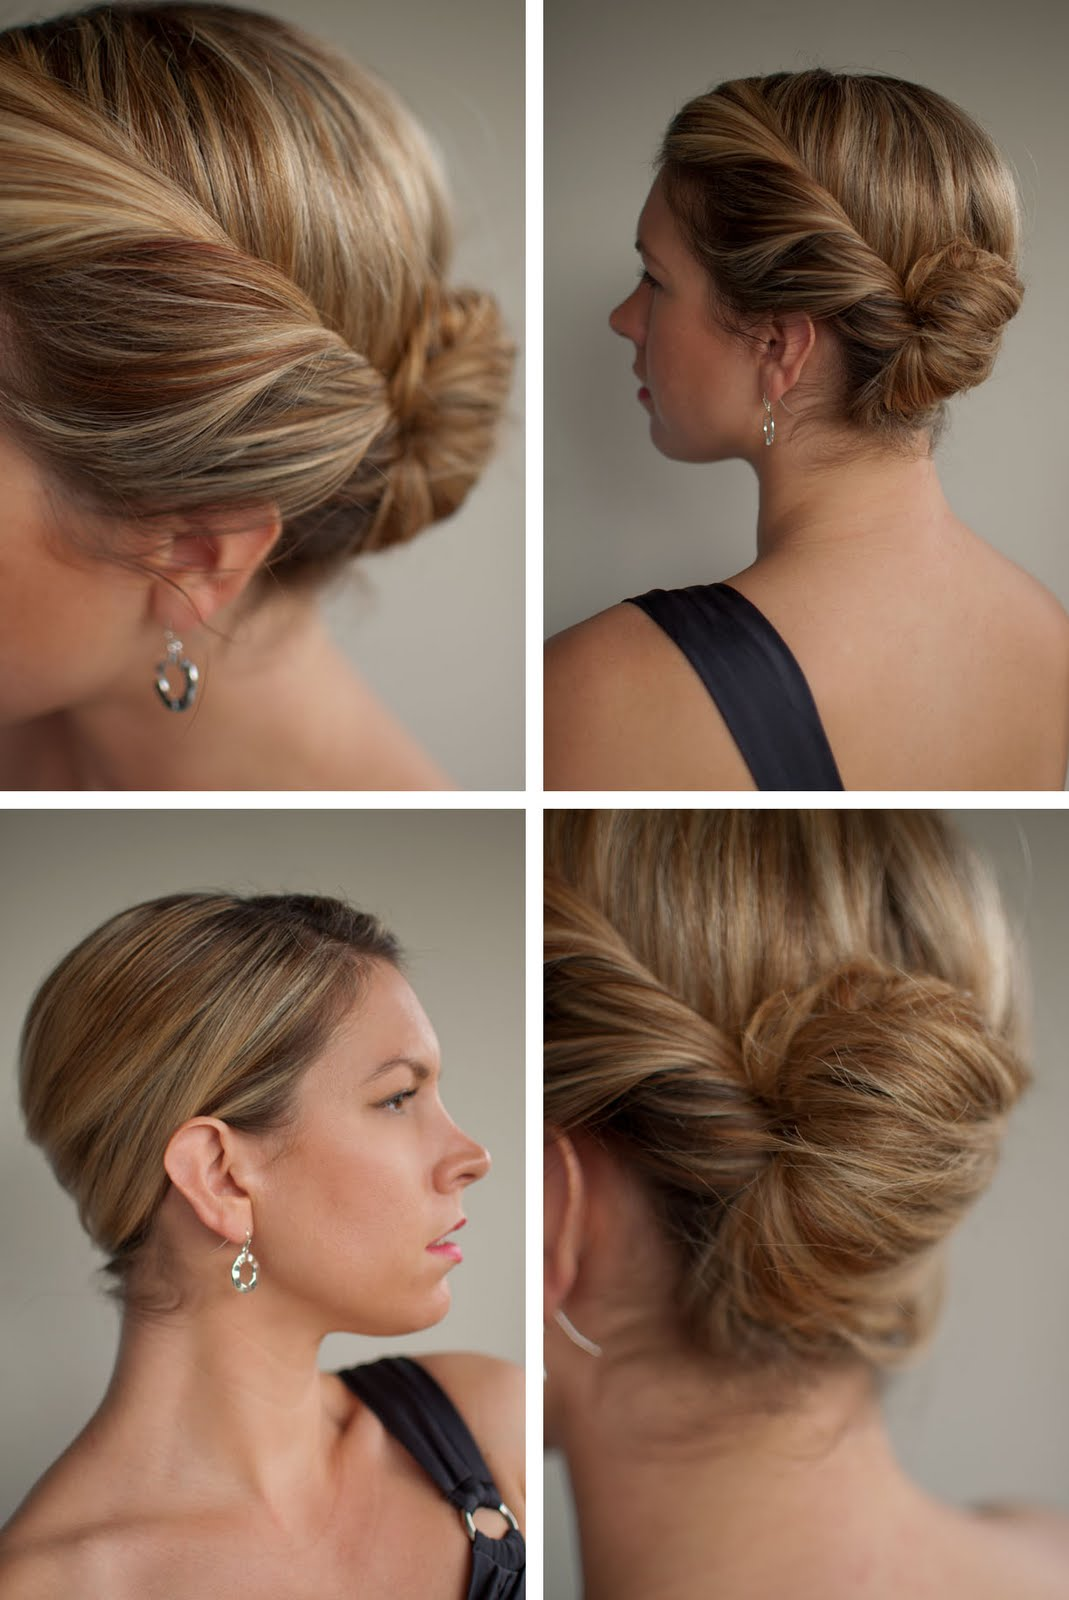 30 days of twist & pin hairstyles – day 28 - hair romance